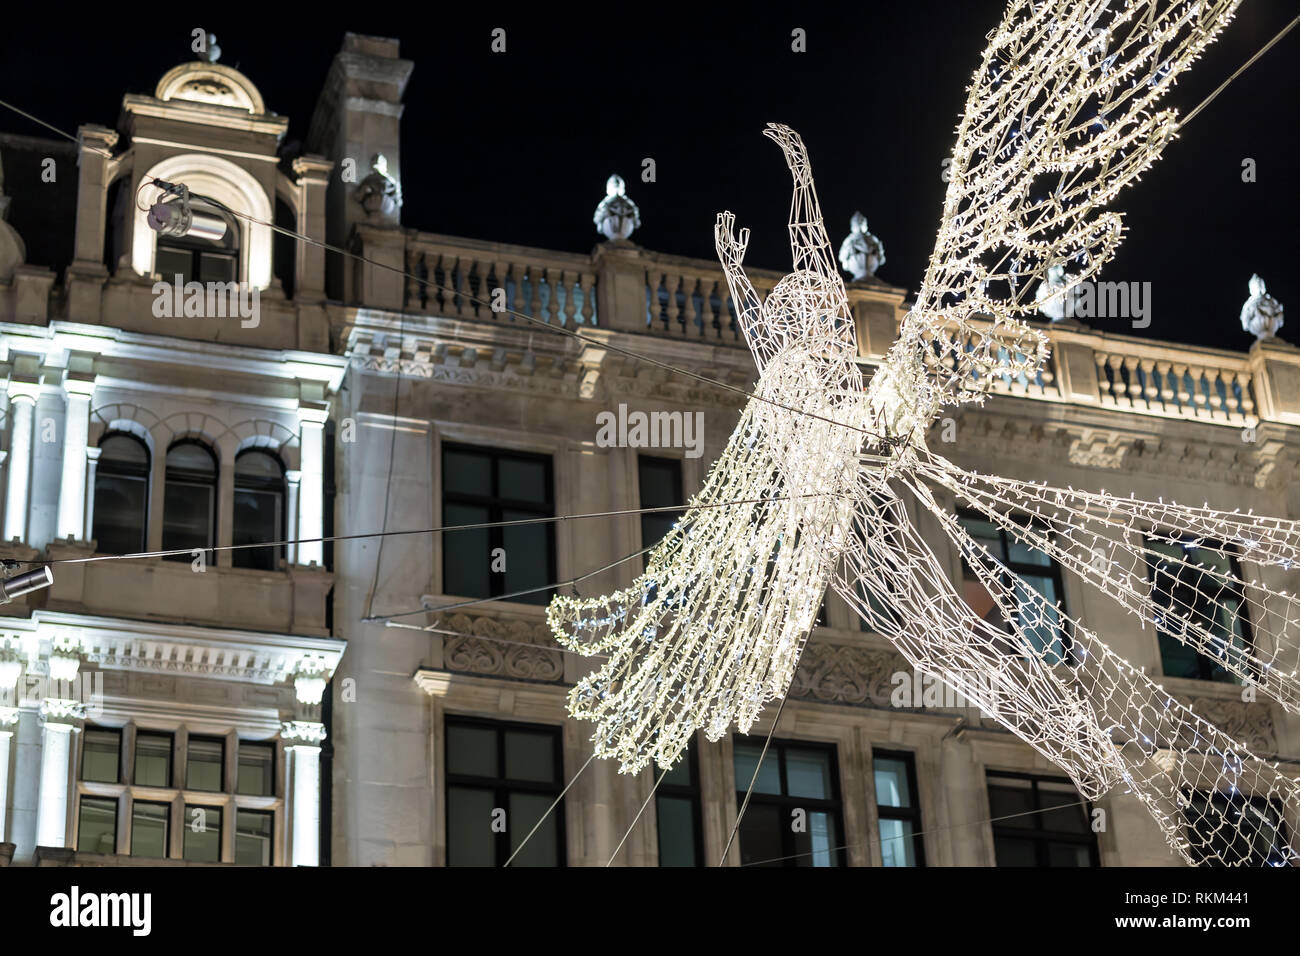 Regents street decorated for 2017 Christmas, London Stock Photo